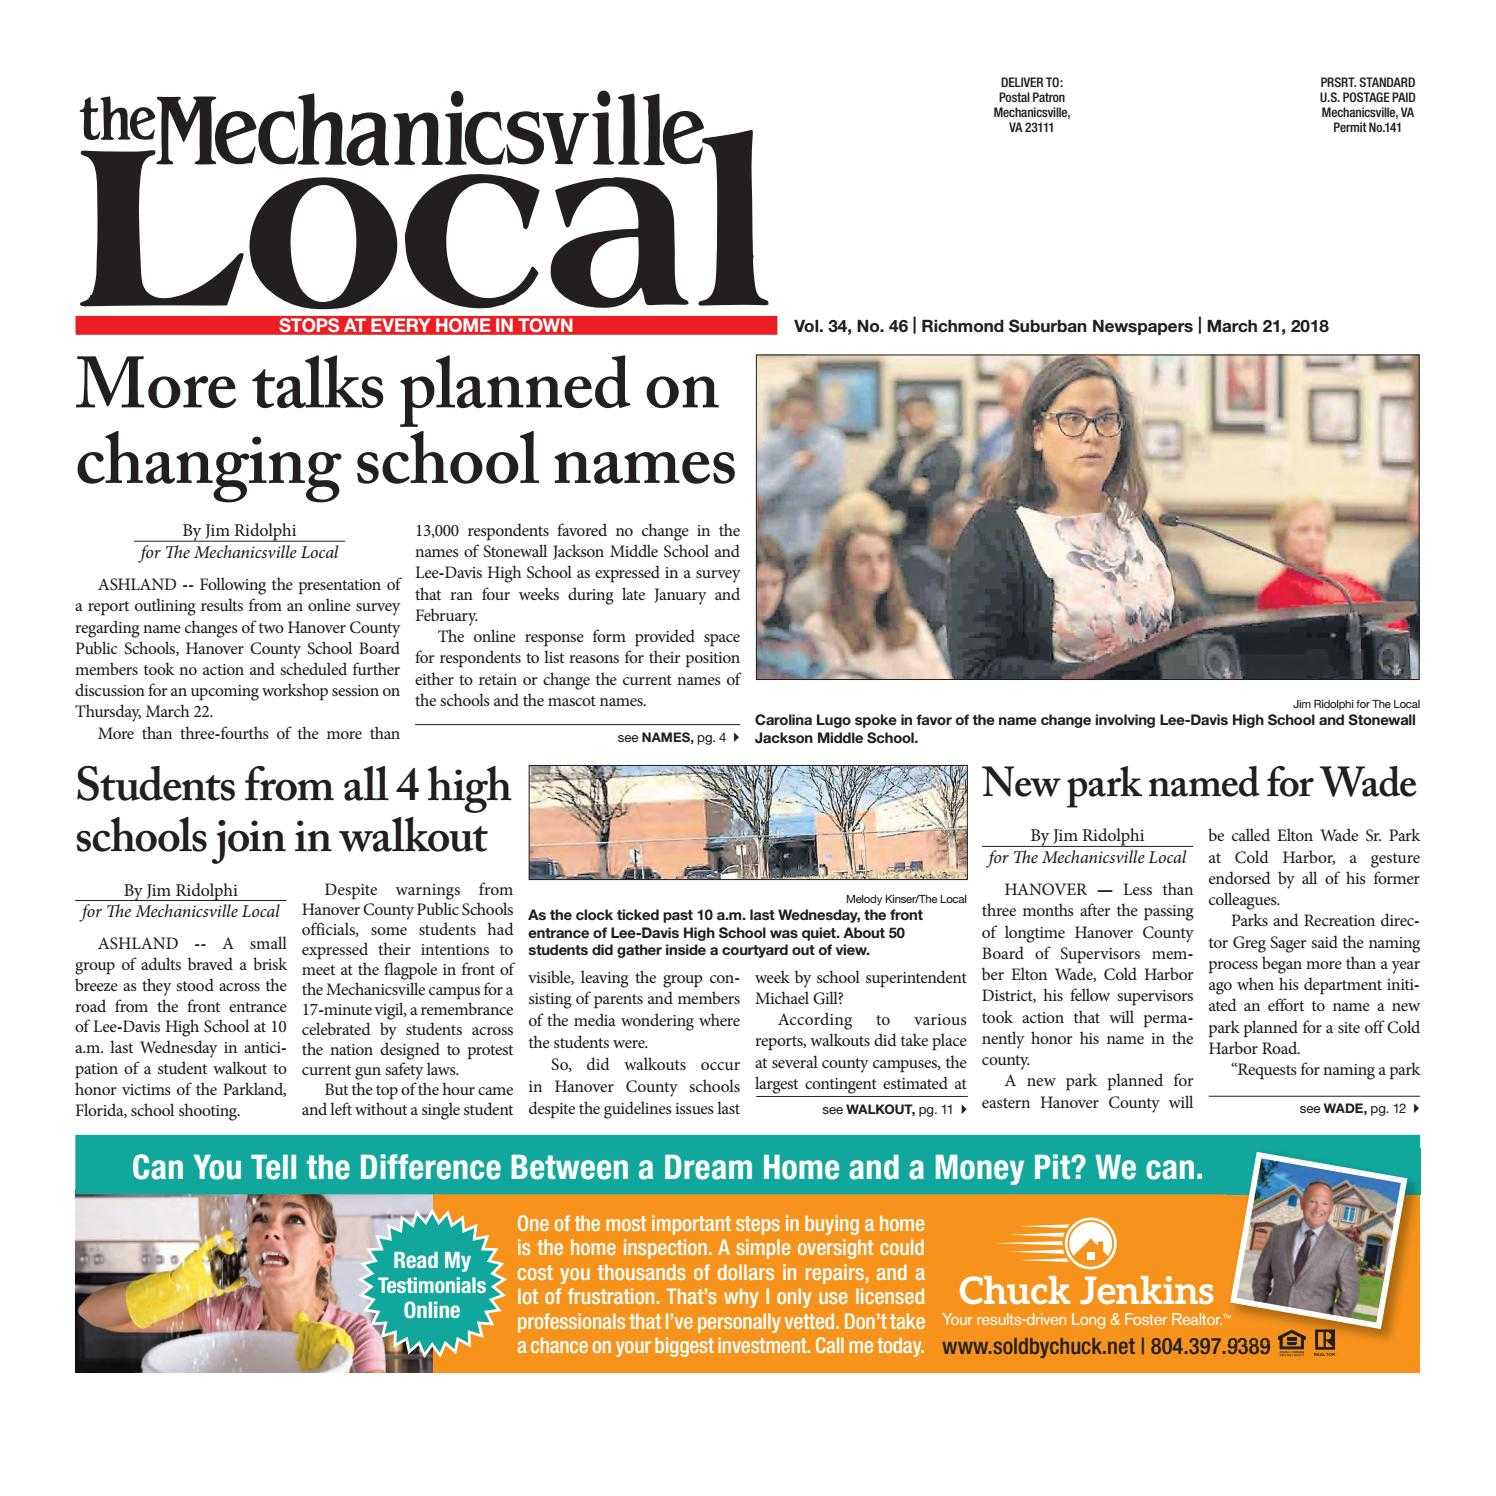 Nova Cancer Warrior Worksheet Answers as Well as 03 21 18 by the Mechanicsville Local issuu